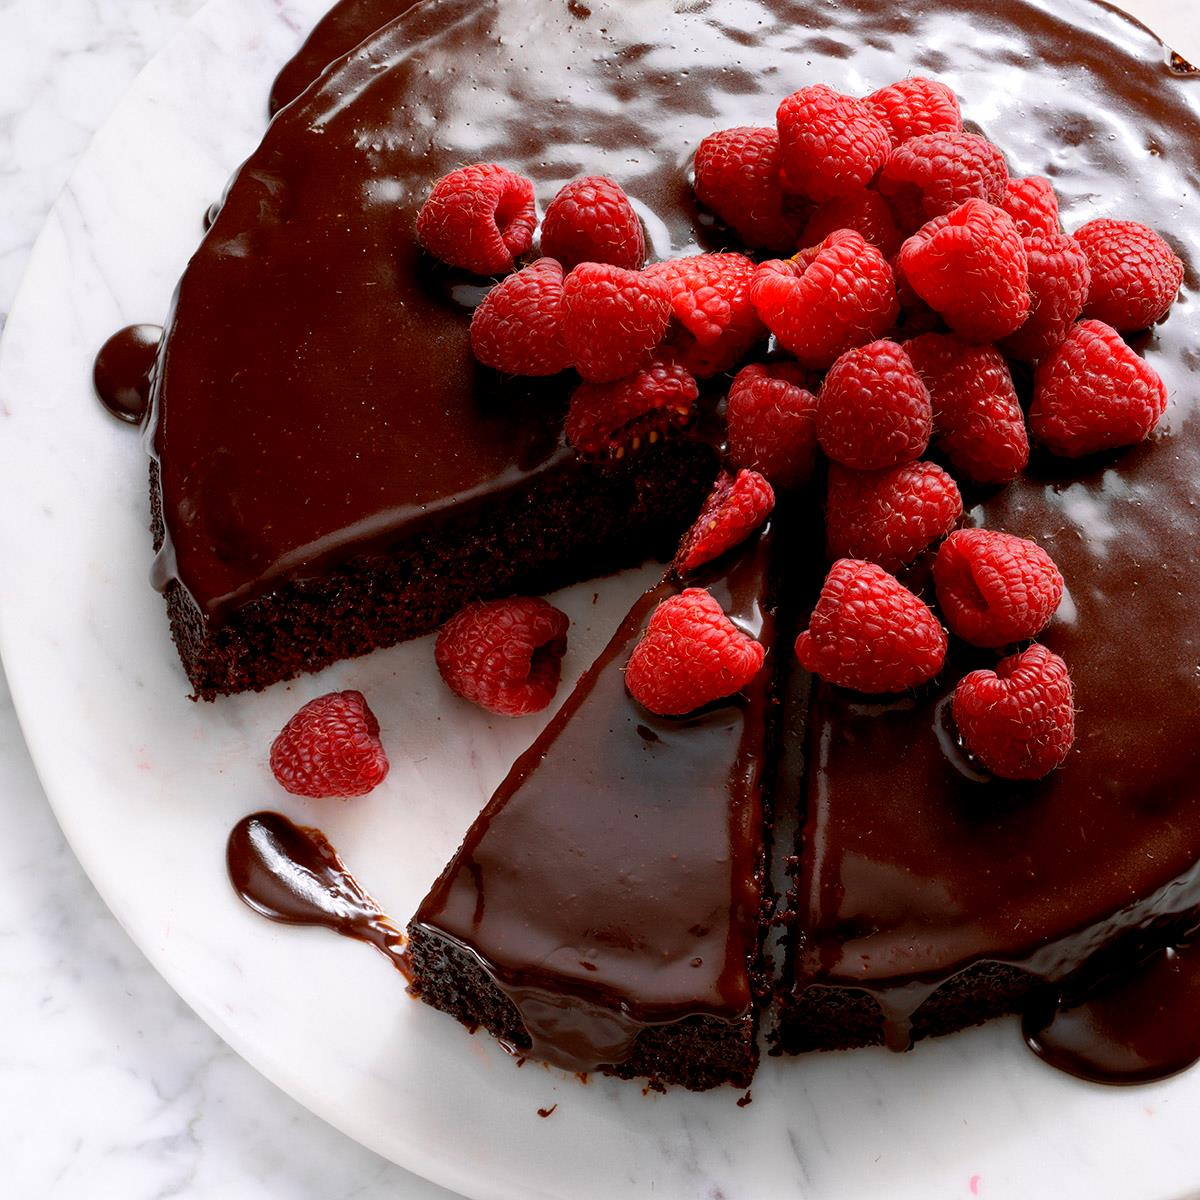 Ganache Topped Chocolate Cake Recipe